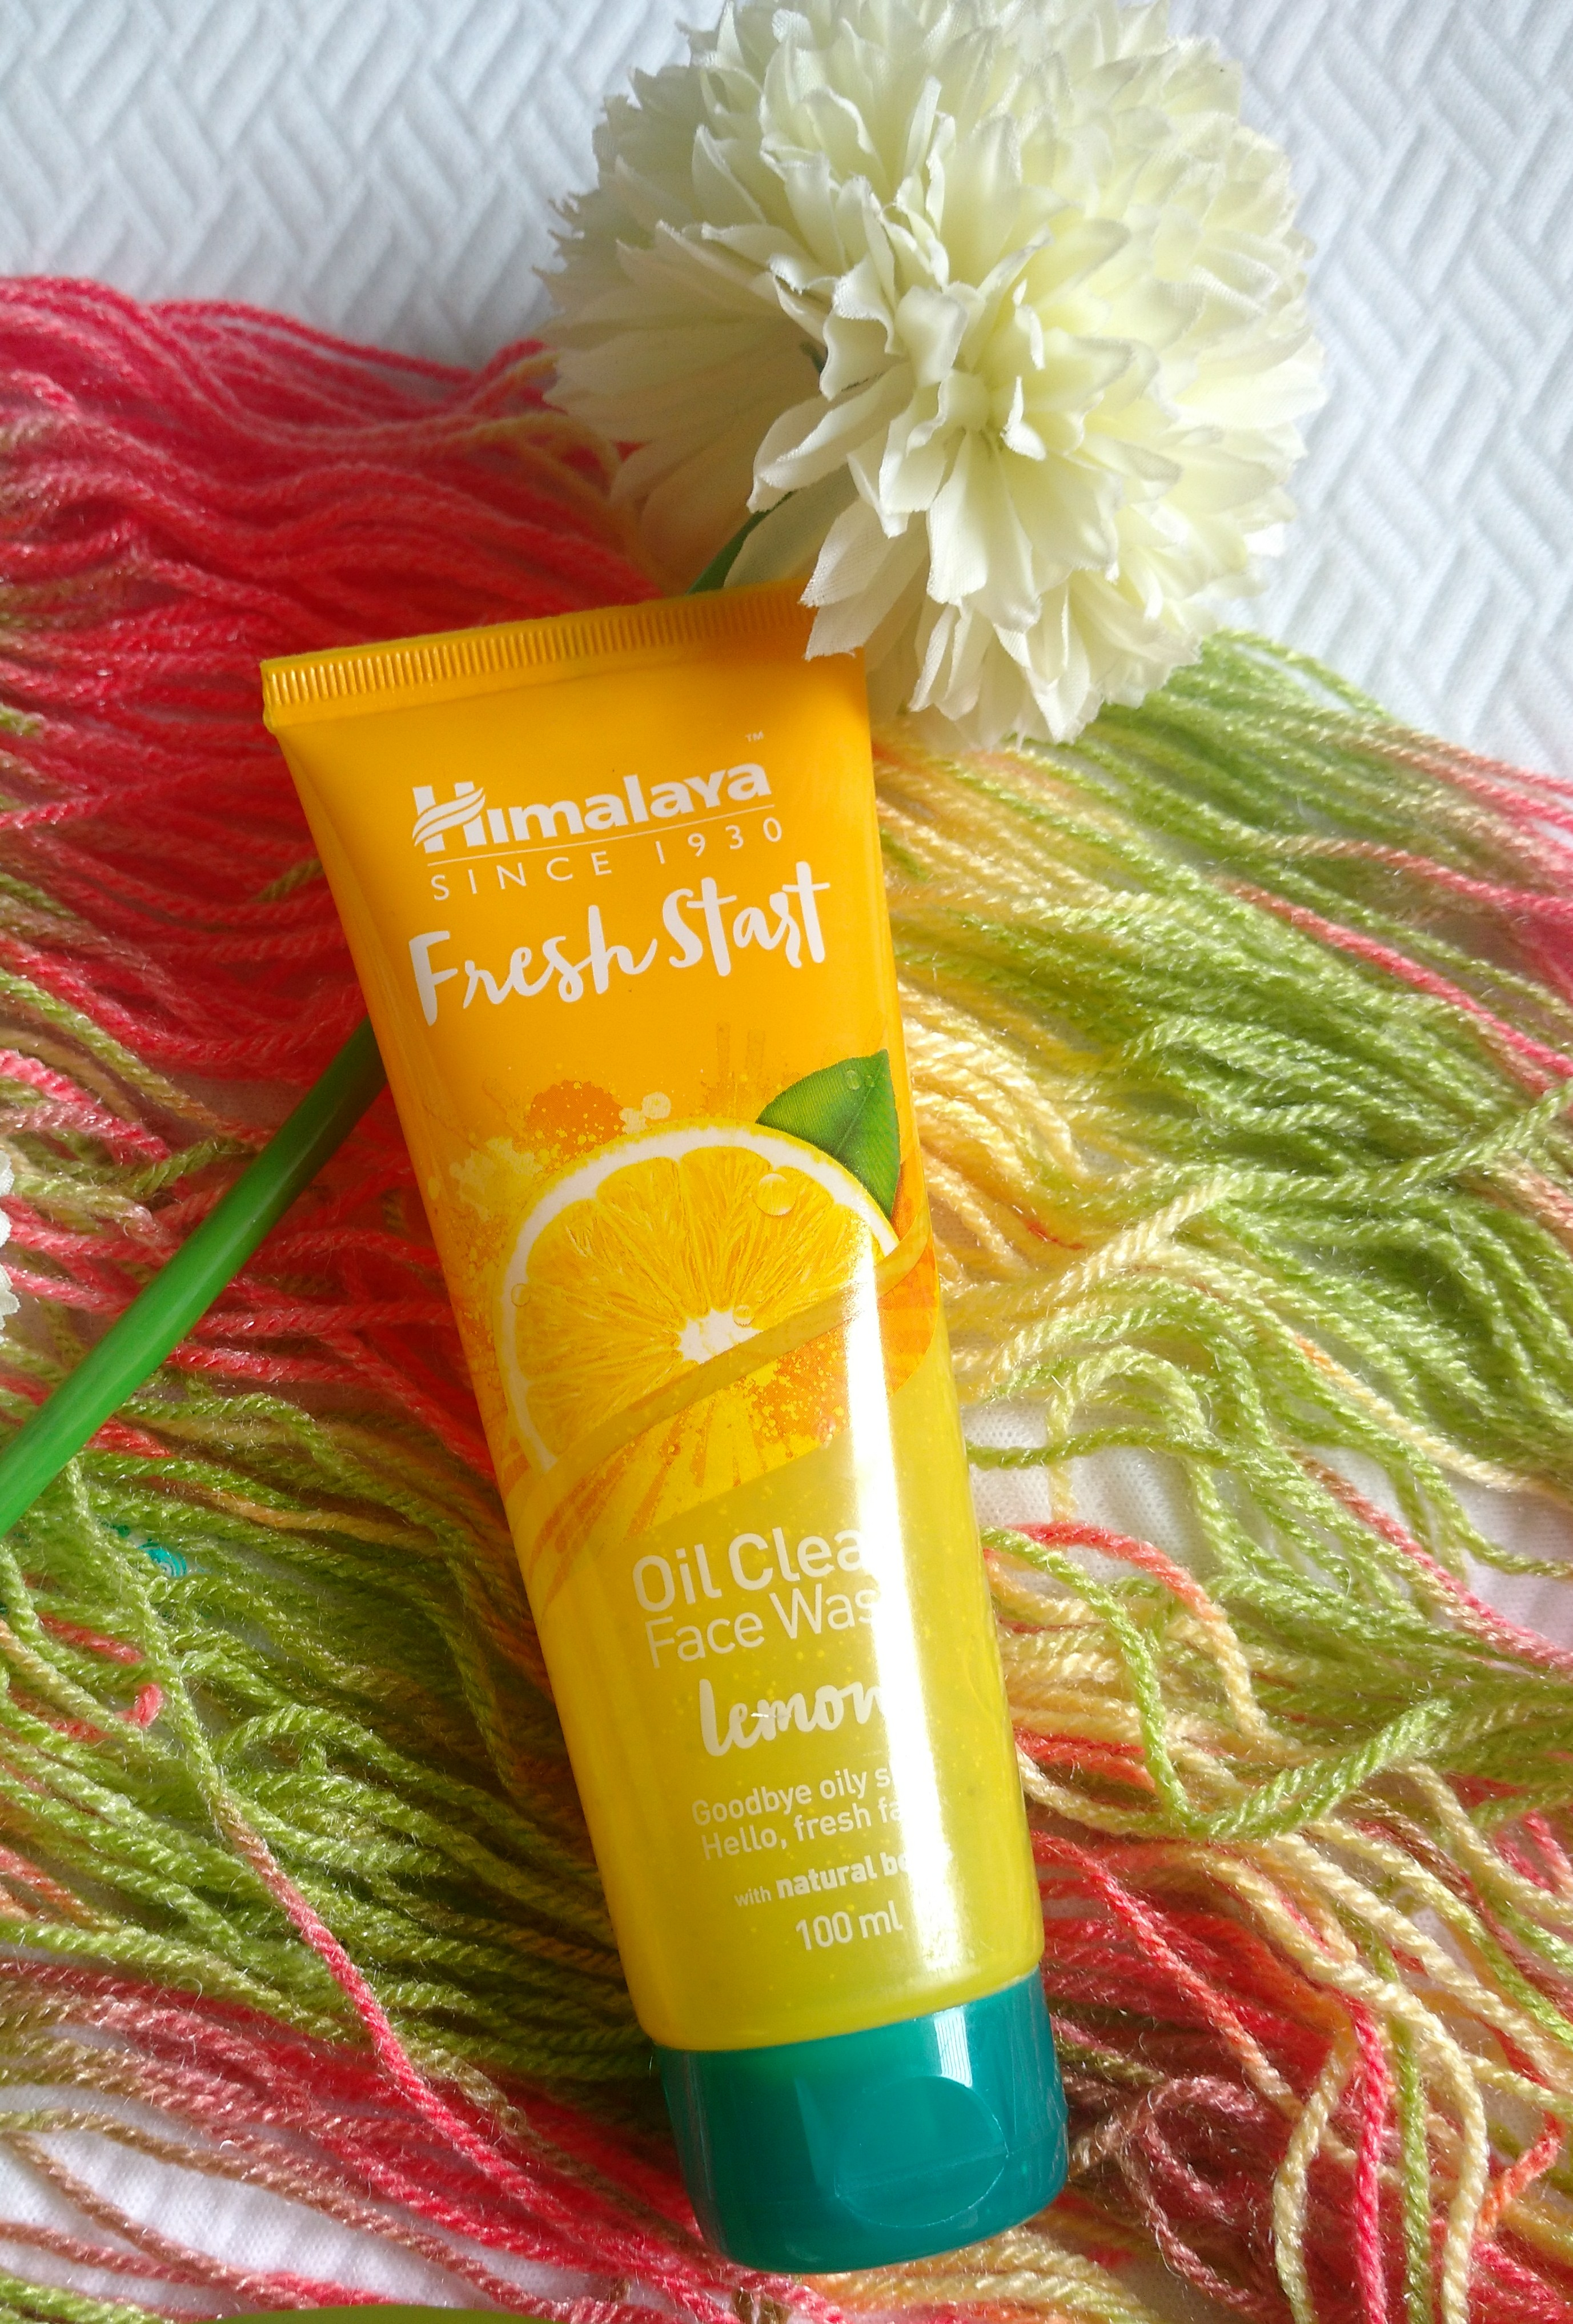 Himalaya Herbals Fresh Start Oil Clear Lemon Face Wash-Best for oily skin-By reny